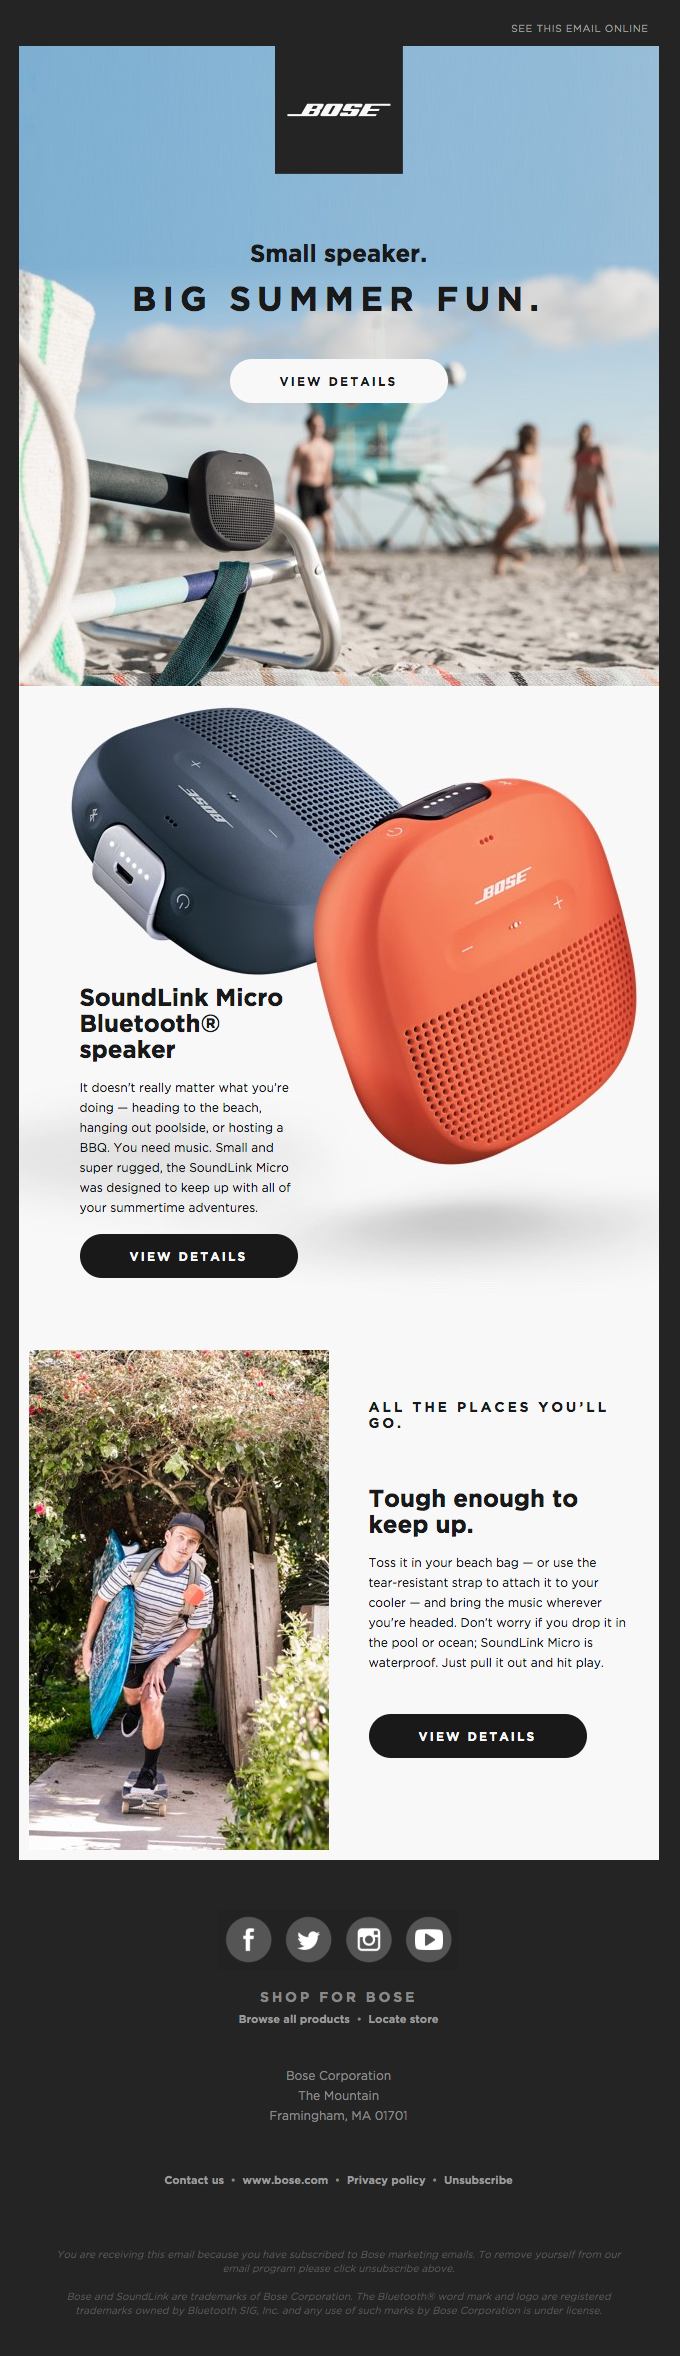 Summertime vibes with SoundLink Micro